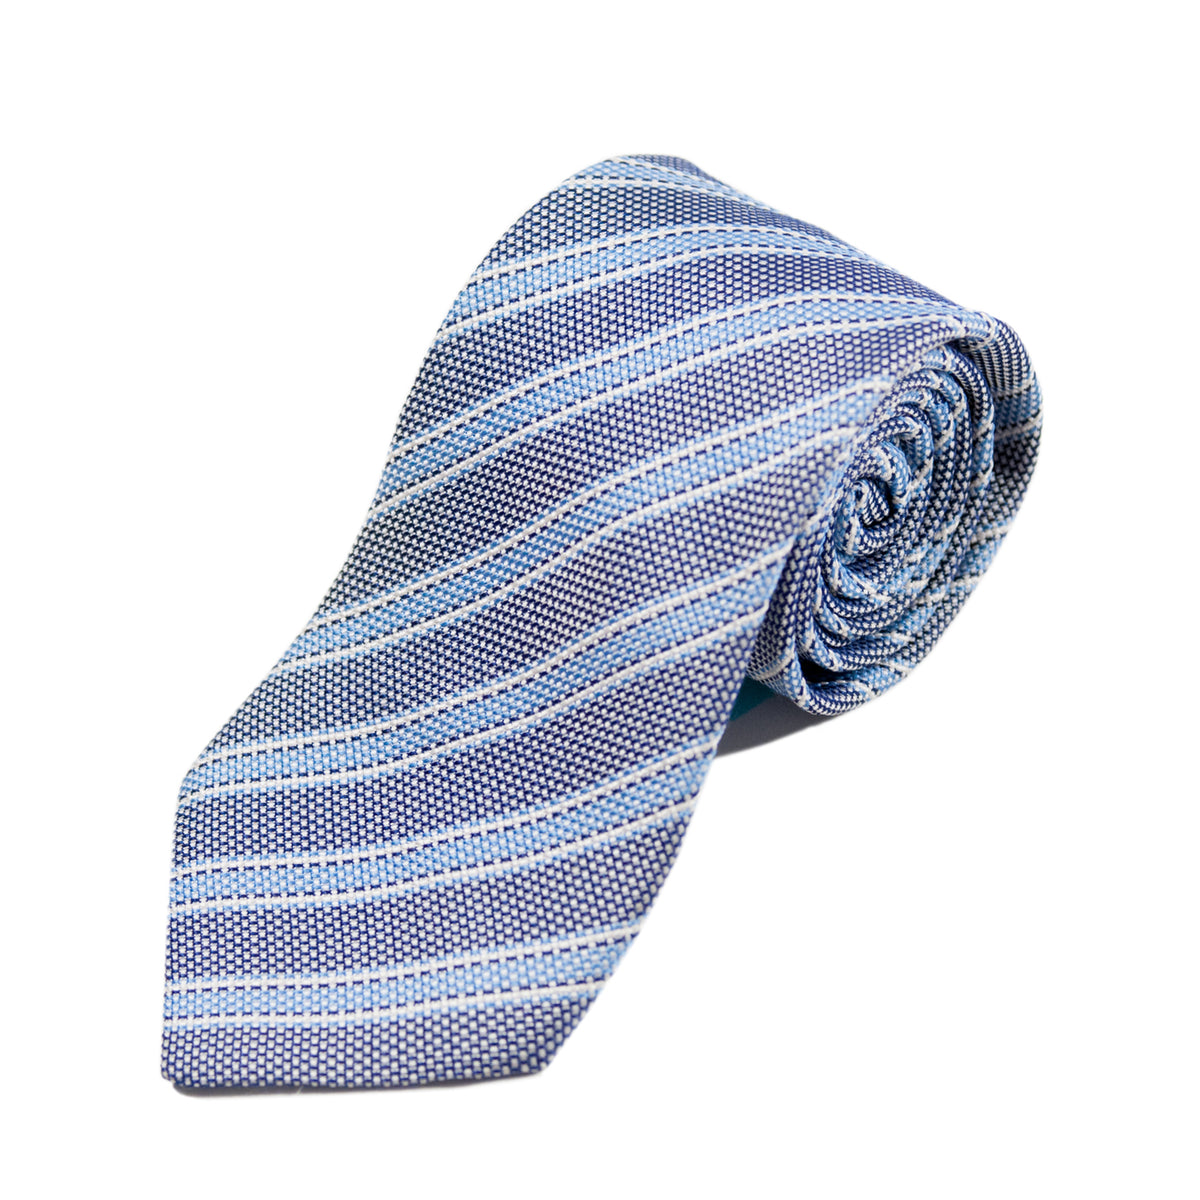 Dolce & Gabbana Grey Striped Tie